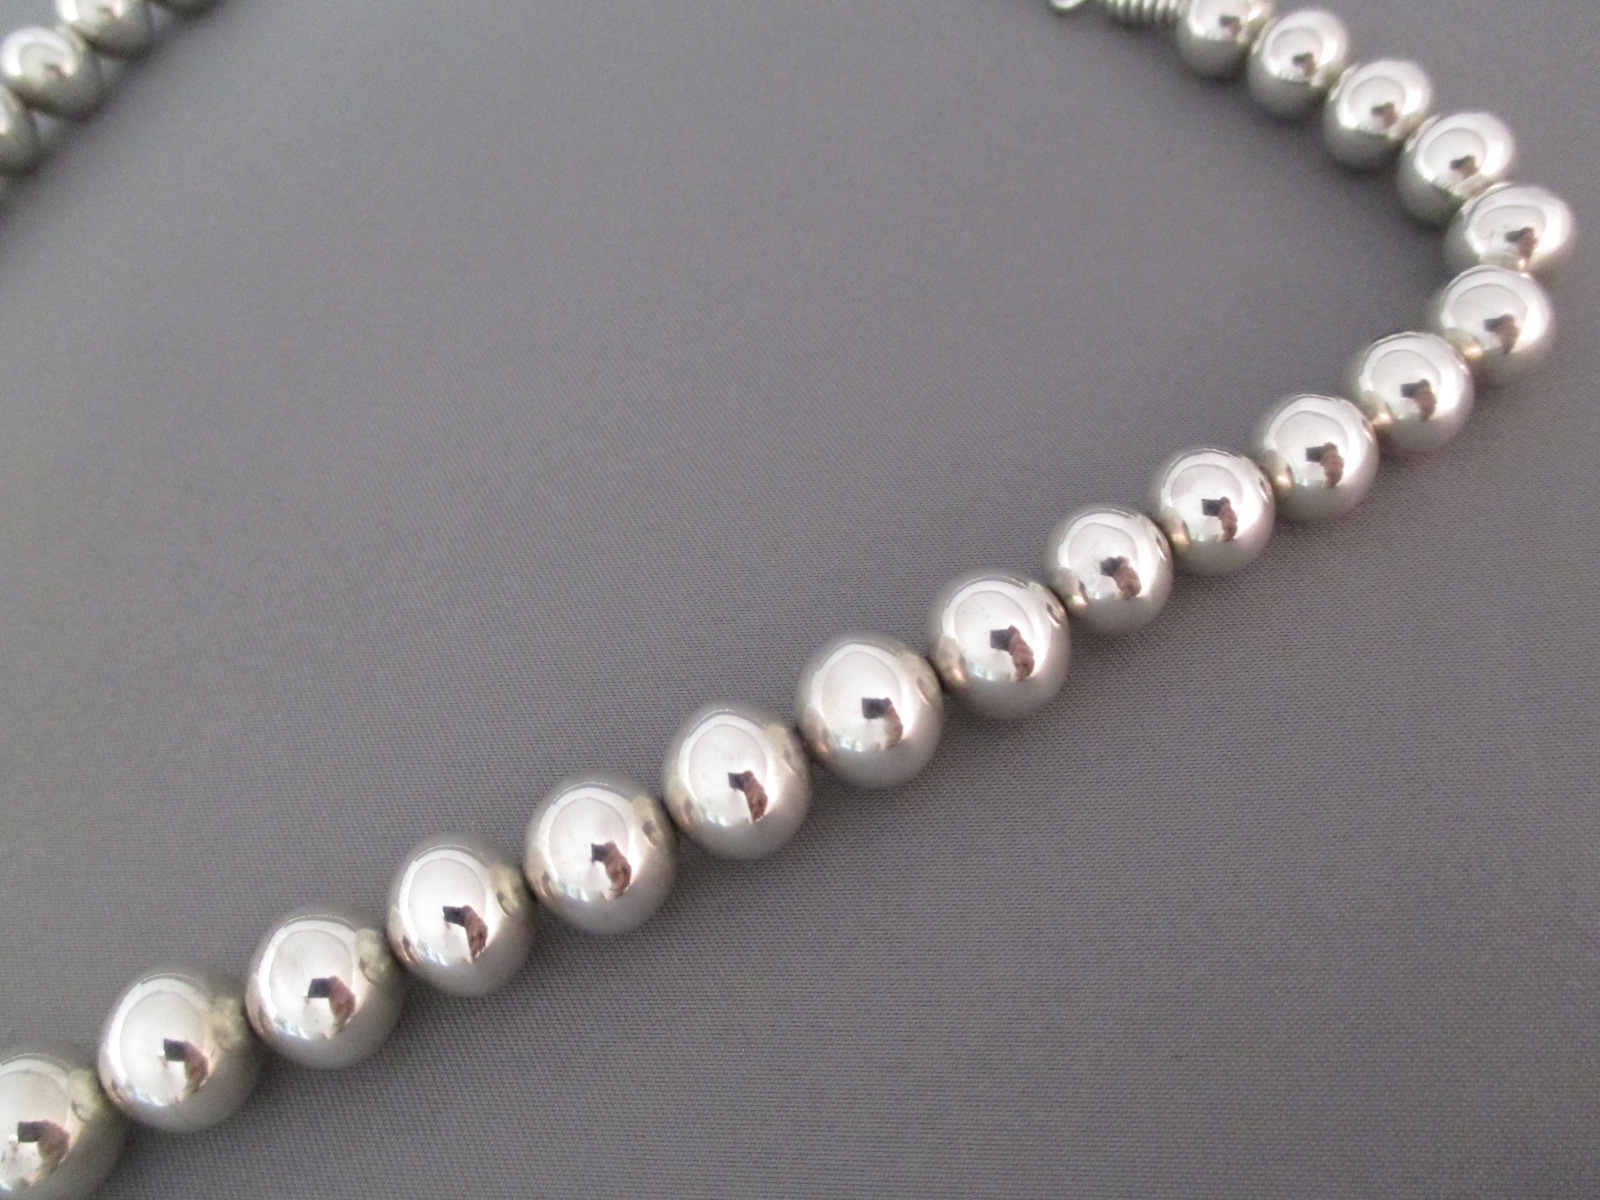 longer sterling silver bead necklace by navajo jewelry artists, gene u0026  martha jackson uftdyly